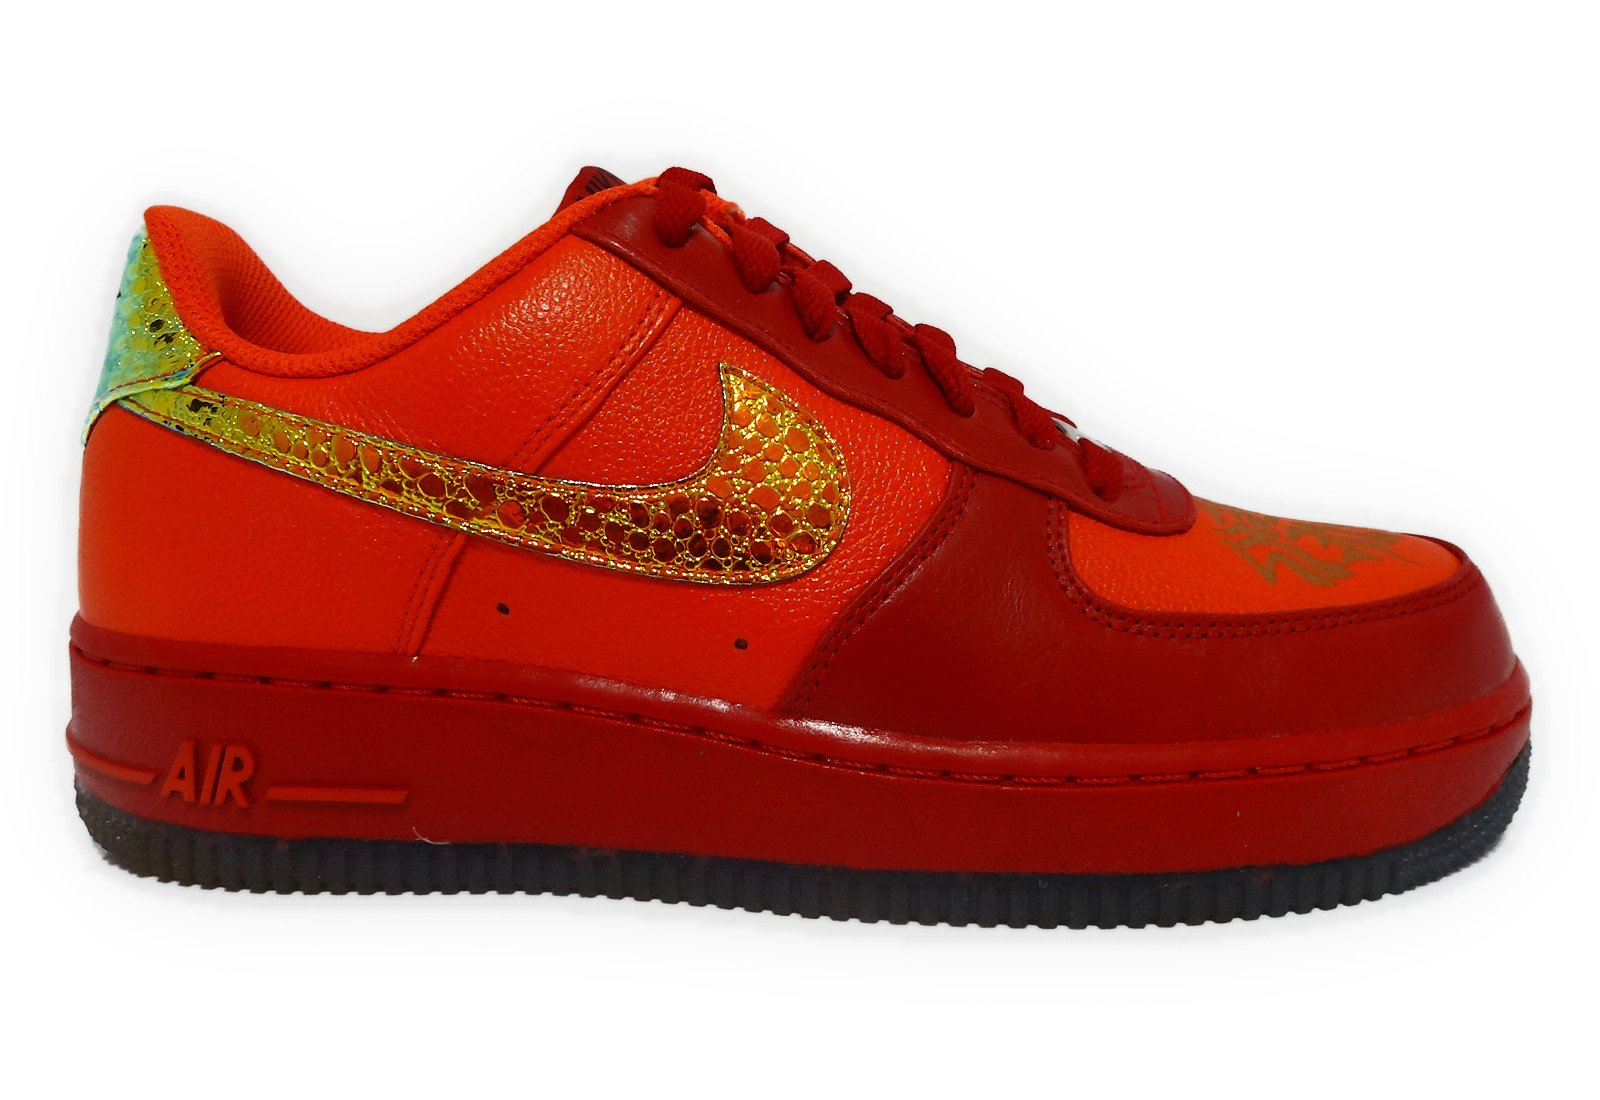 Nike Air Force 1 '07 LE DB Mens Size 7 (Team Orange / Varisty Red) 349440-800